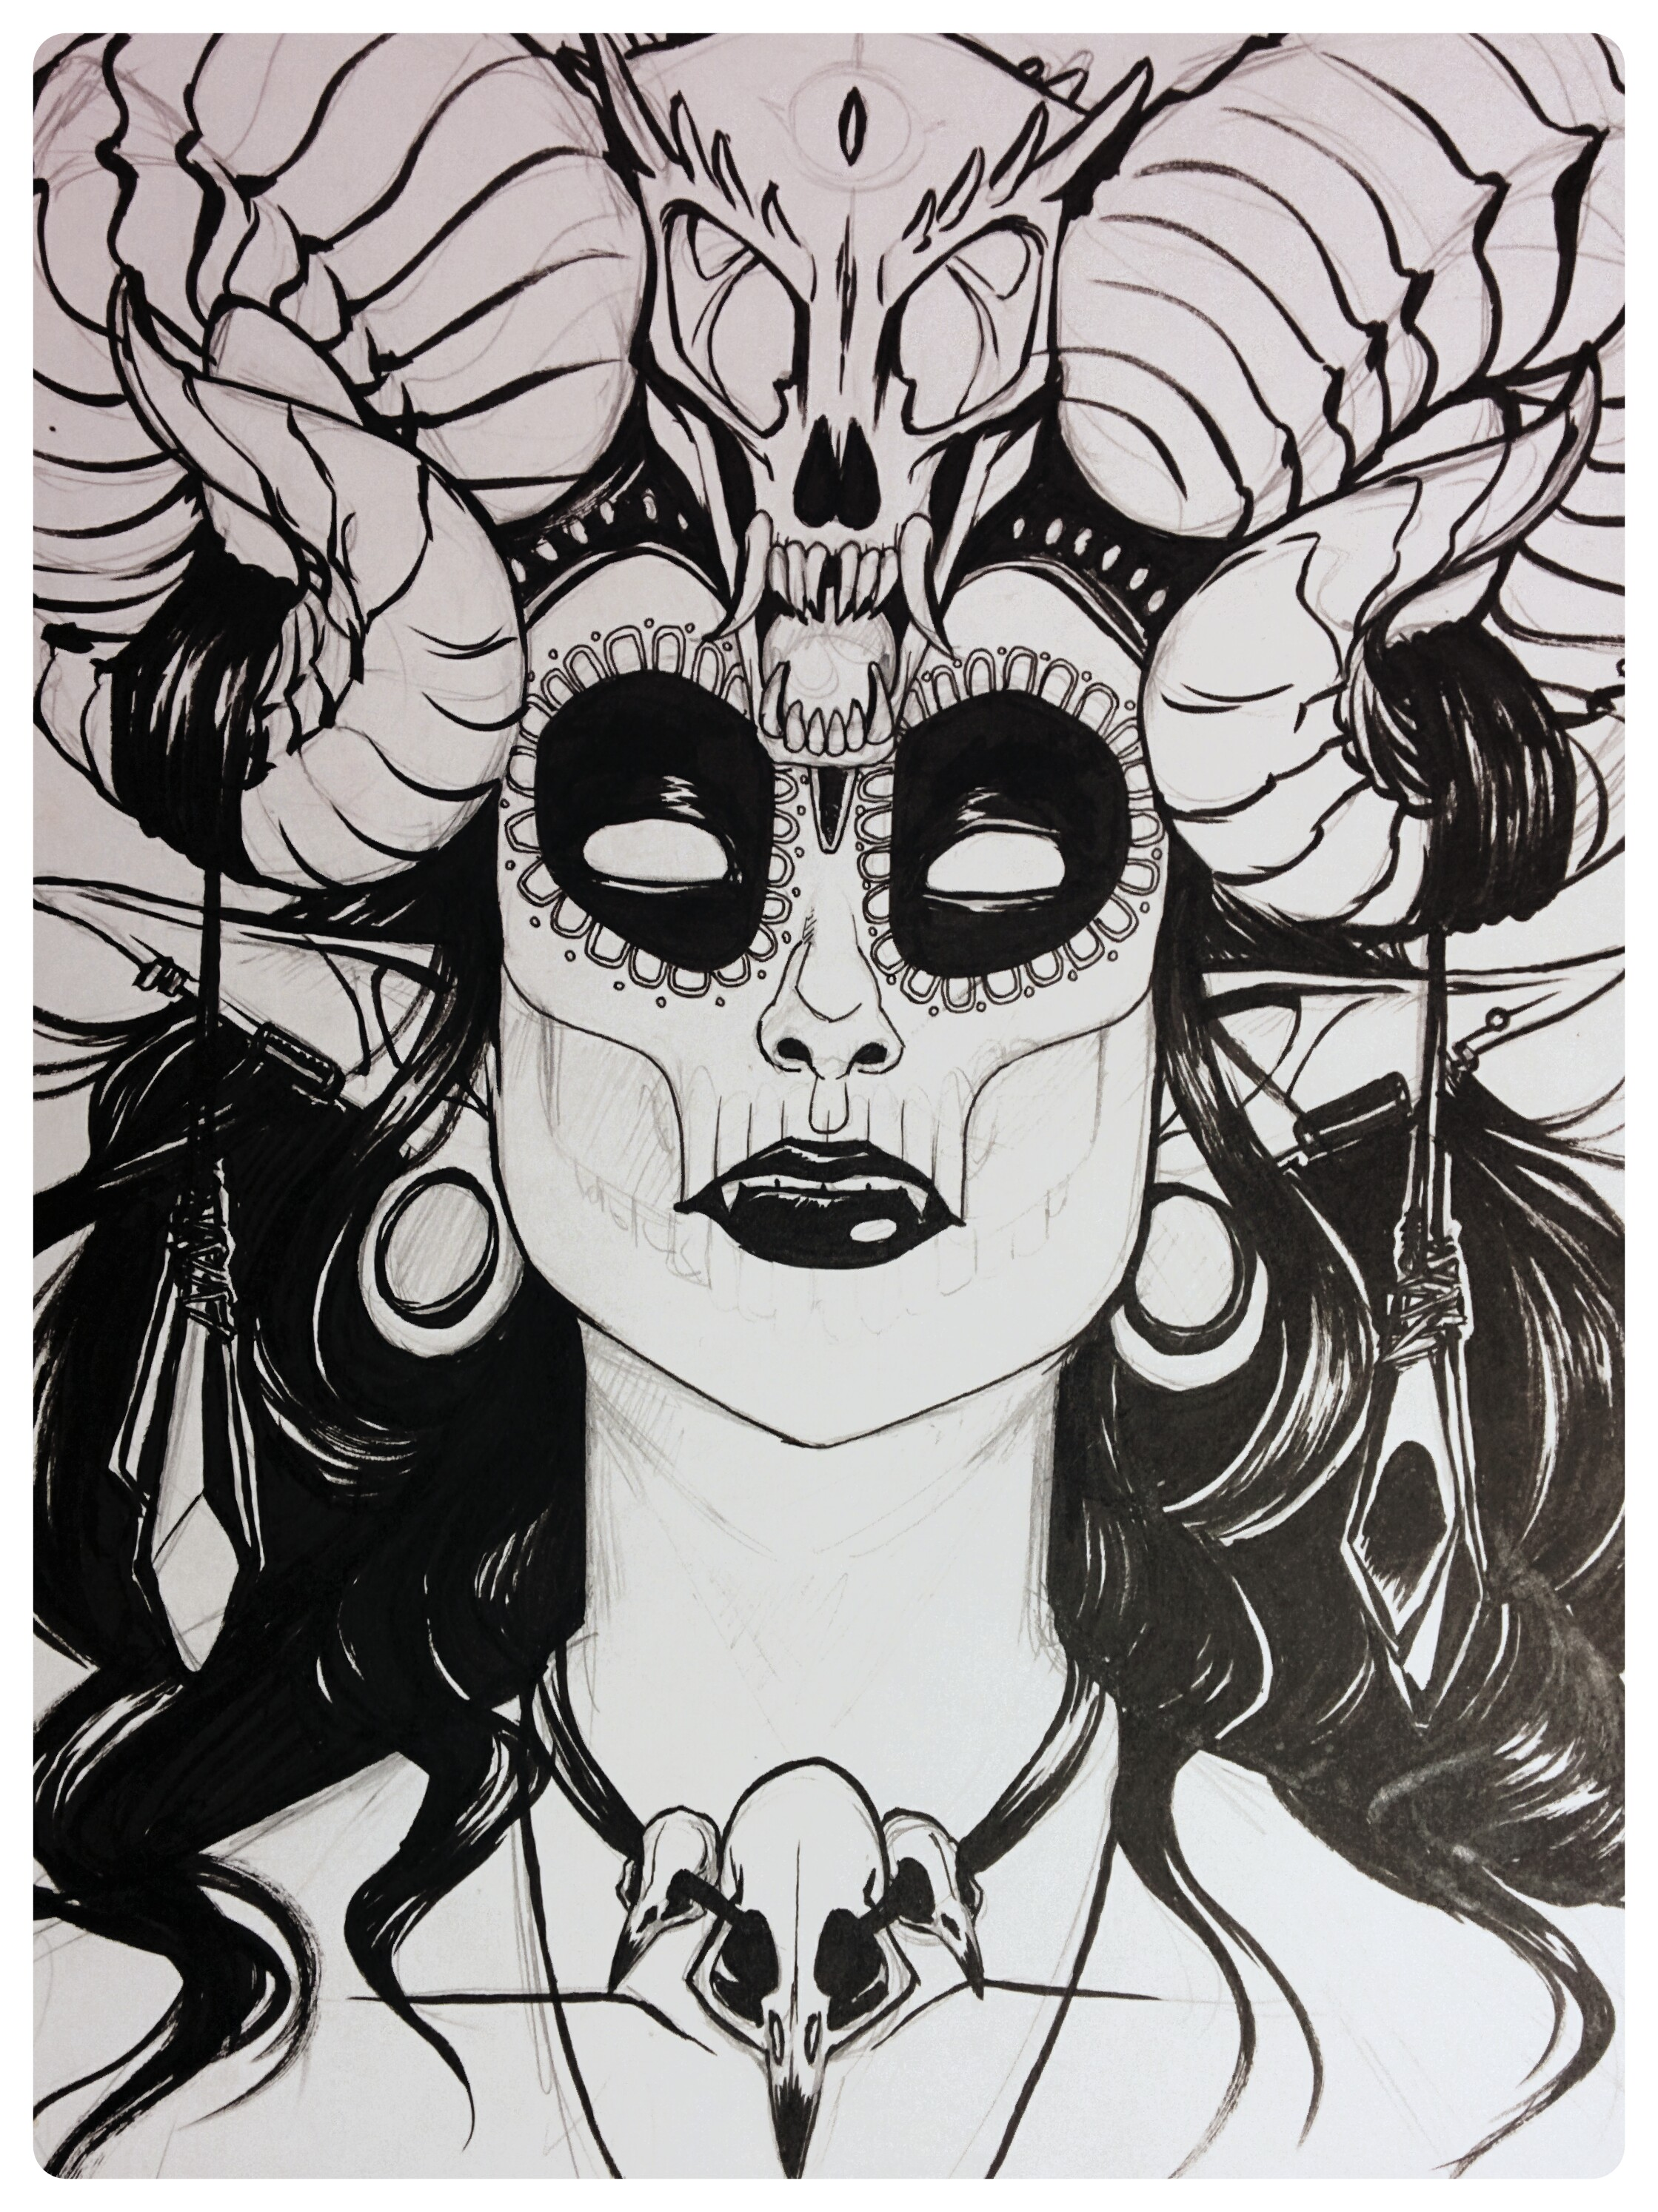 ANOTHER Horned Monster Lady